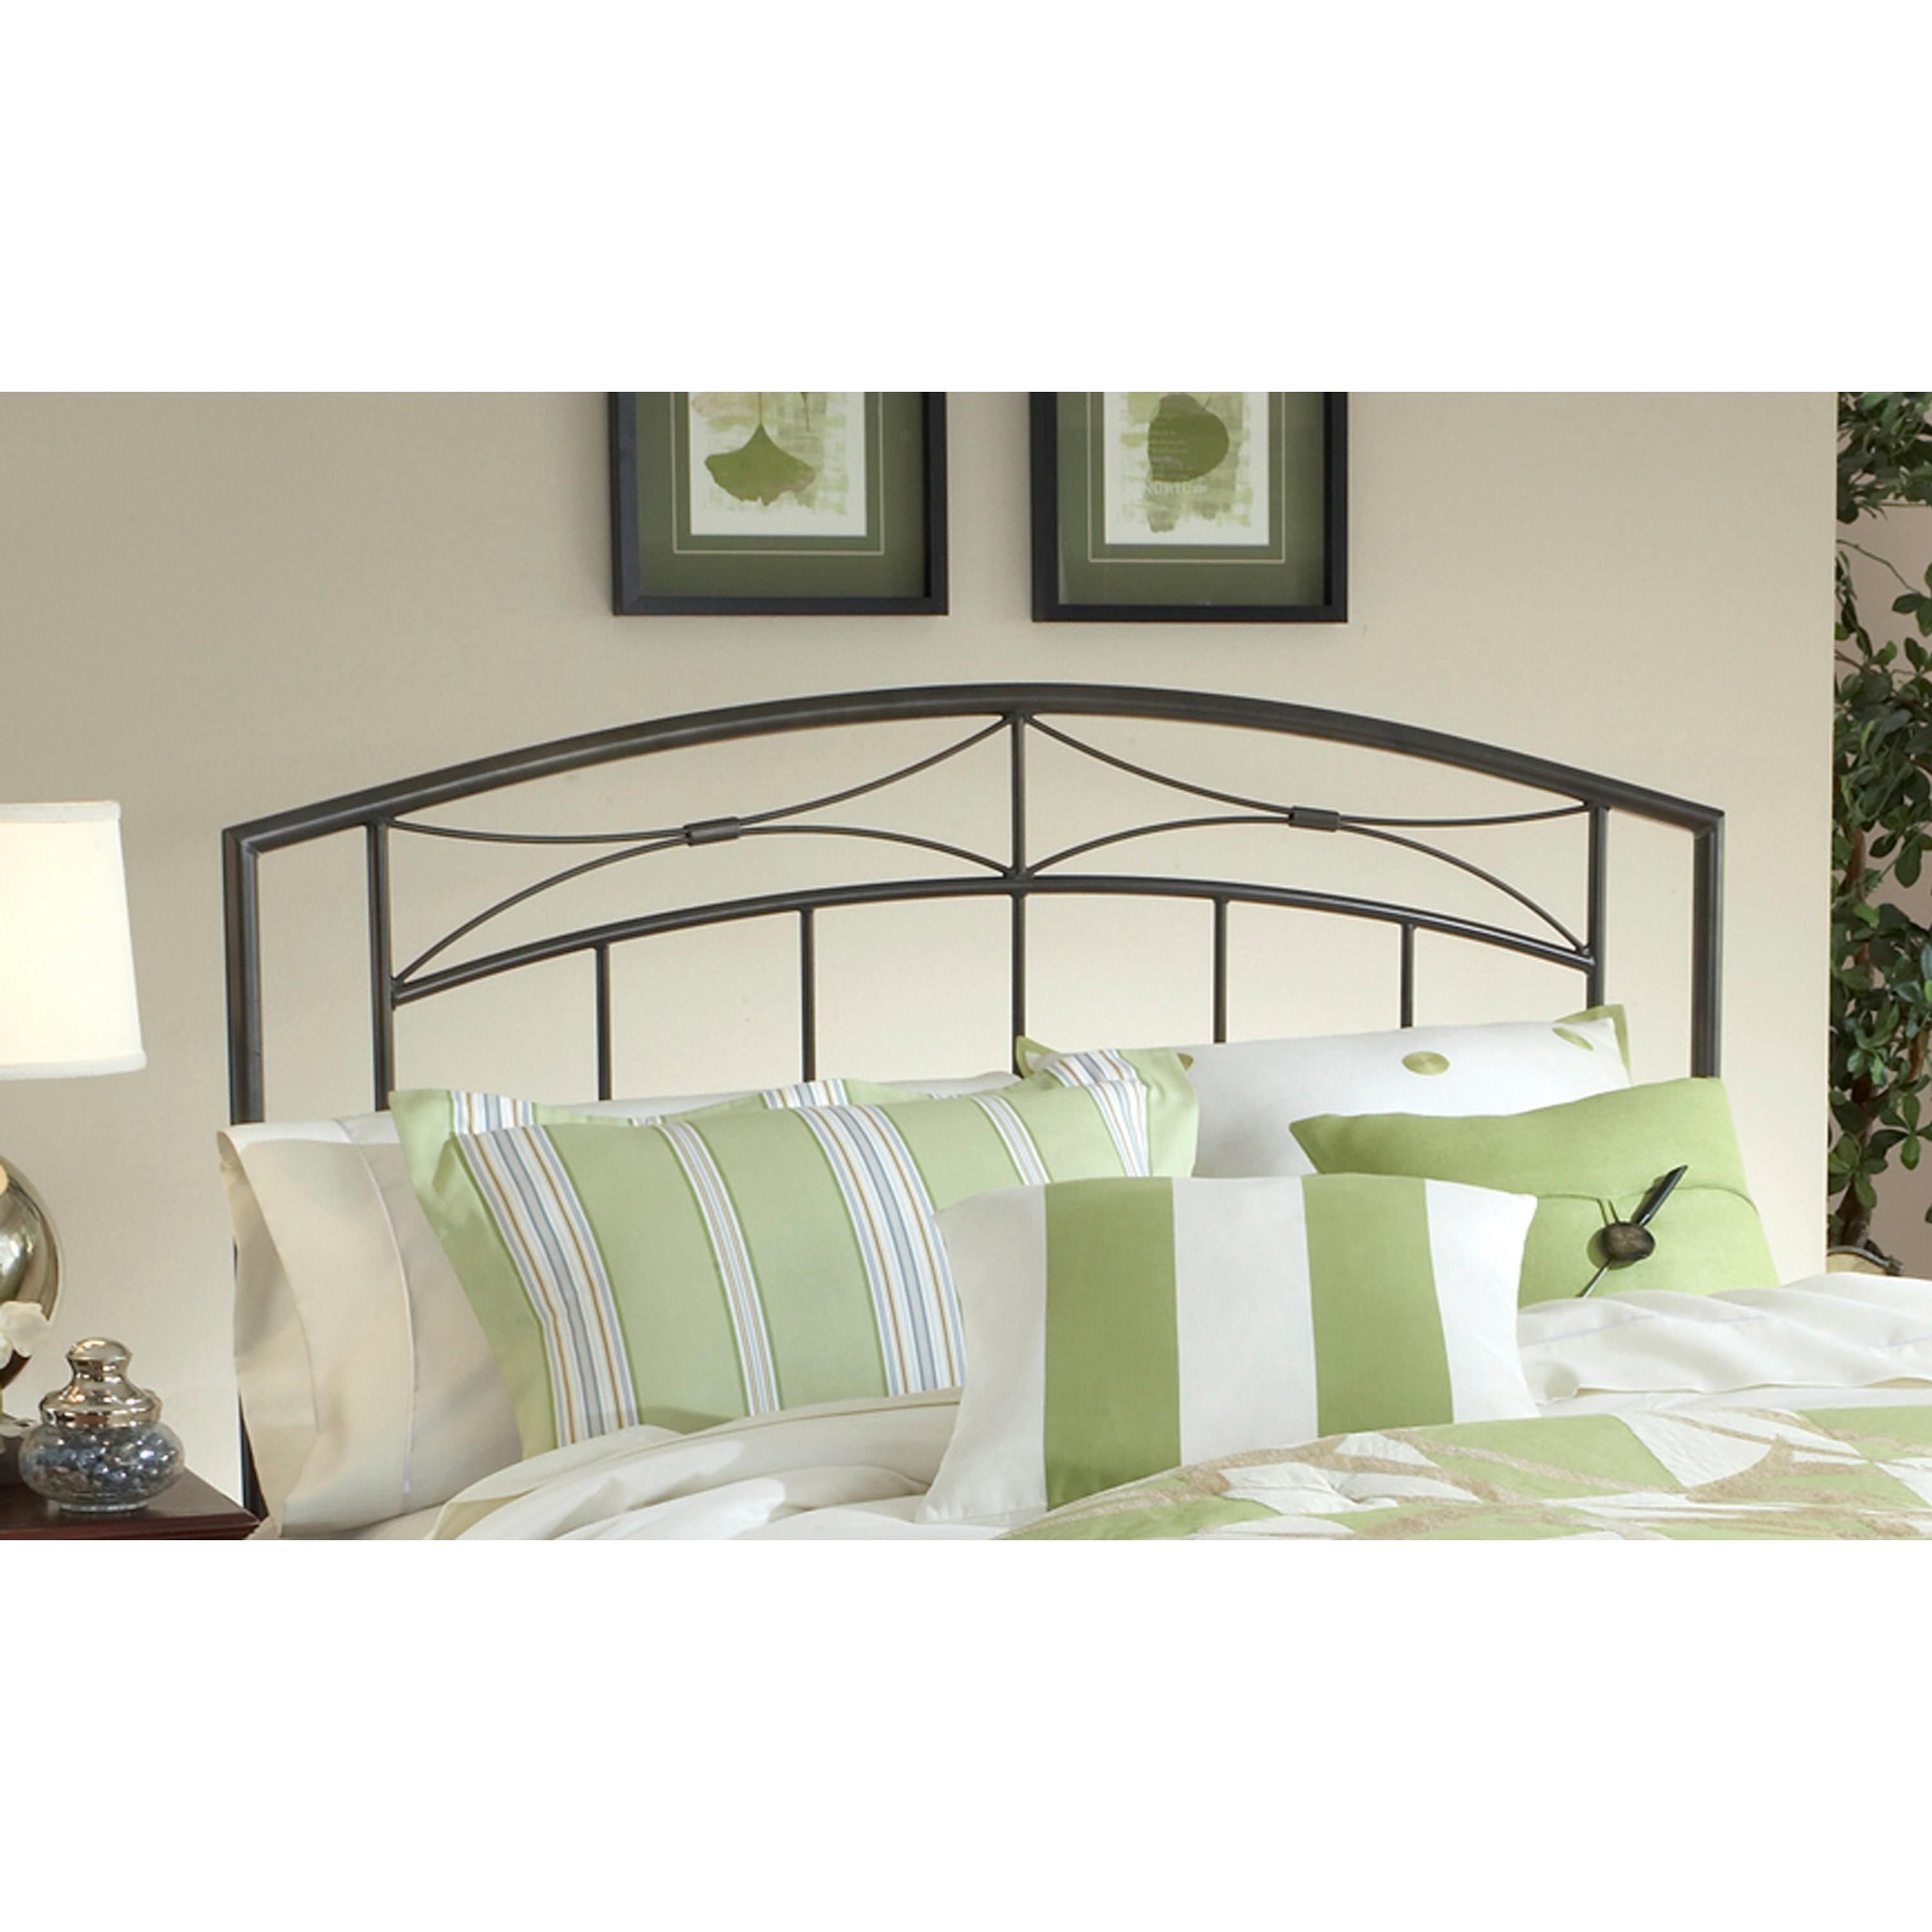 Hillsdale Metal Beds King Morris Headboard - Item Number: 1545HKR